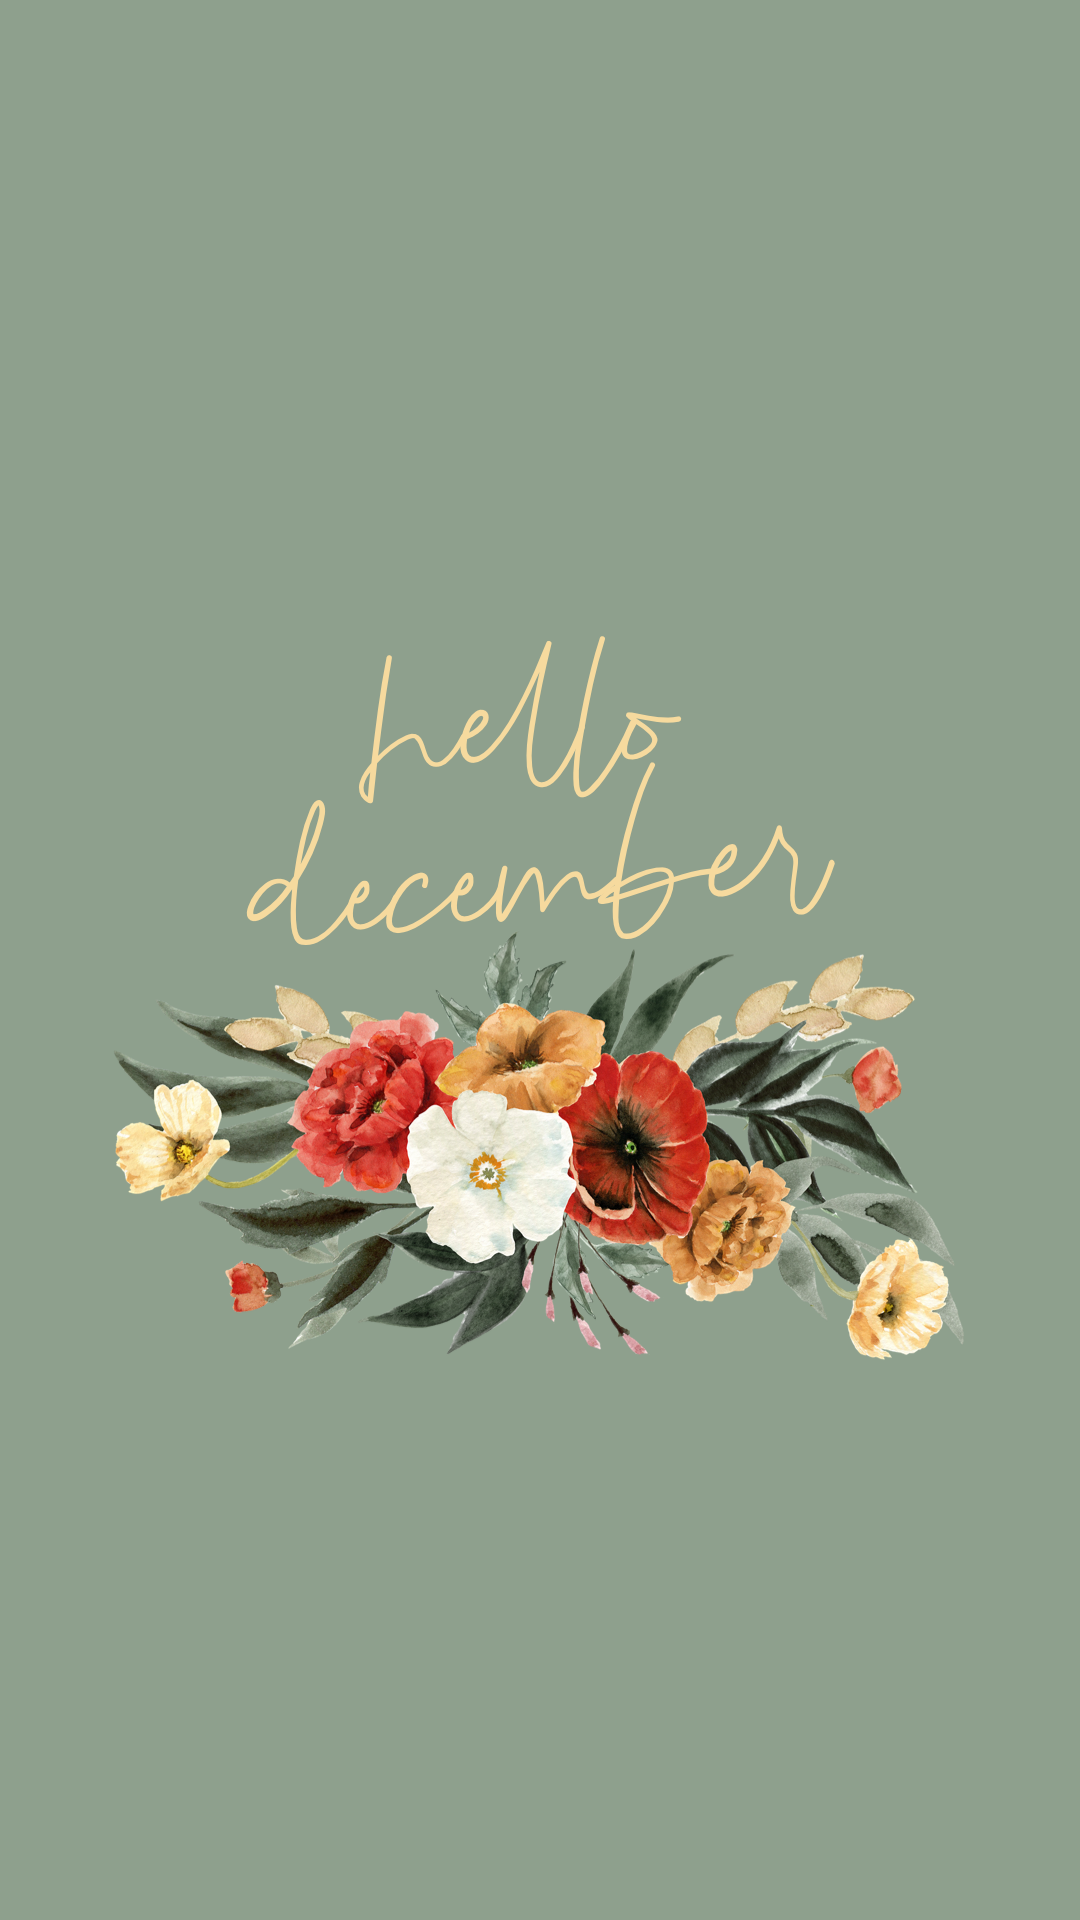 fun wallpaper wallpapers art floral december